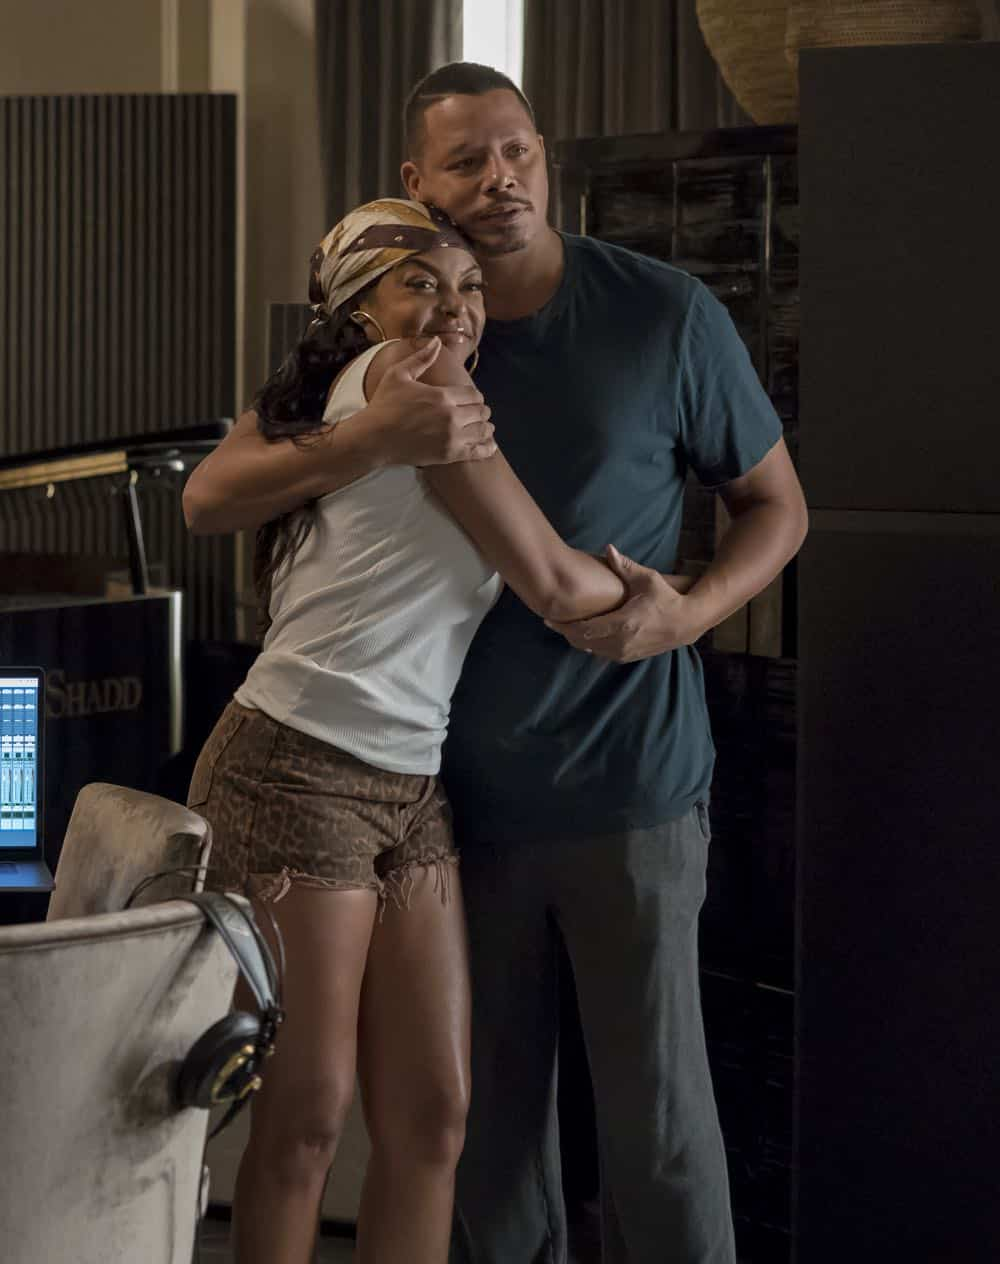 """EMPIRE: L-R: Taraji P. Henson and Terrence Howard in the """"Pride"""" episode of EMPIRE airing Wednesday, Oct. 10 (8:00-9:00 PM ET/PT) on FOX. @2018 Fox Broadcasting Co. CR: Chuck Hodes/FOX."""